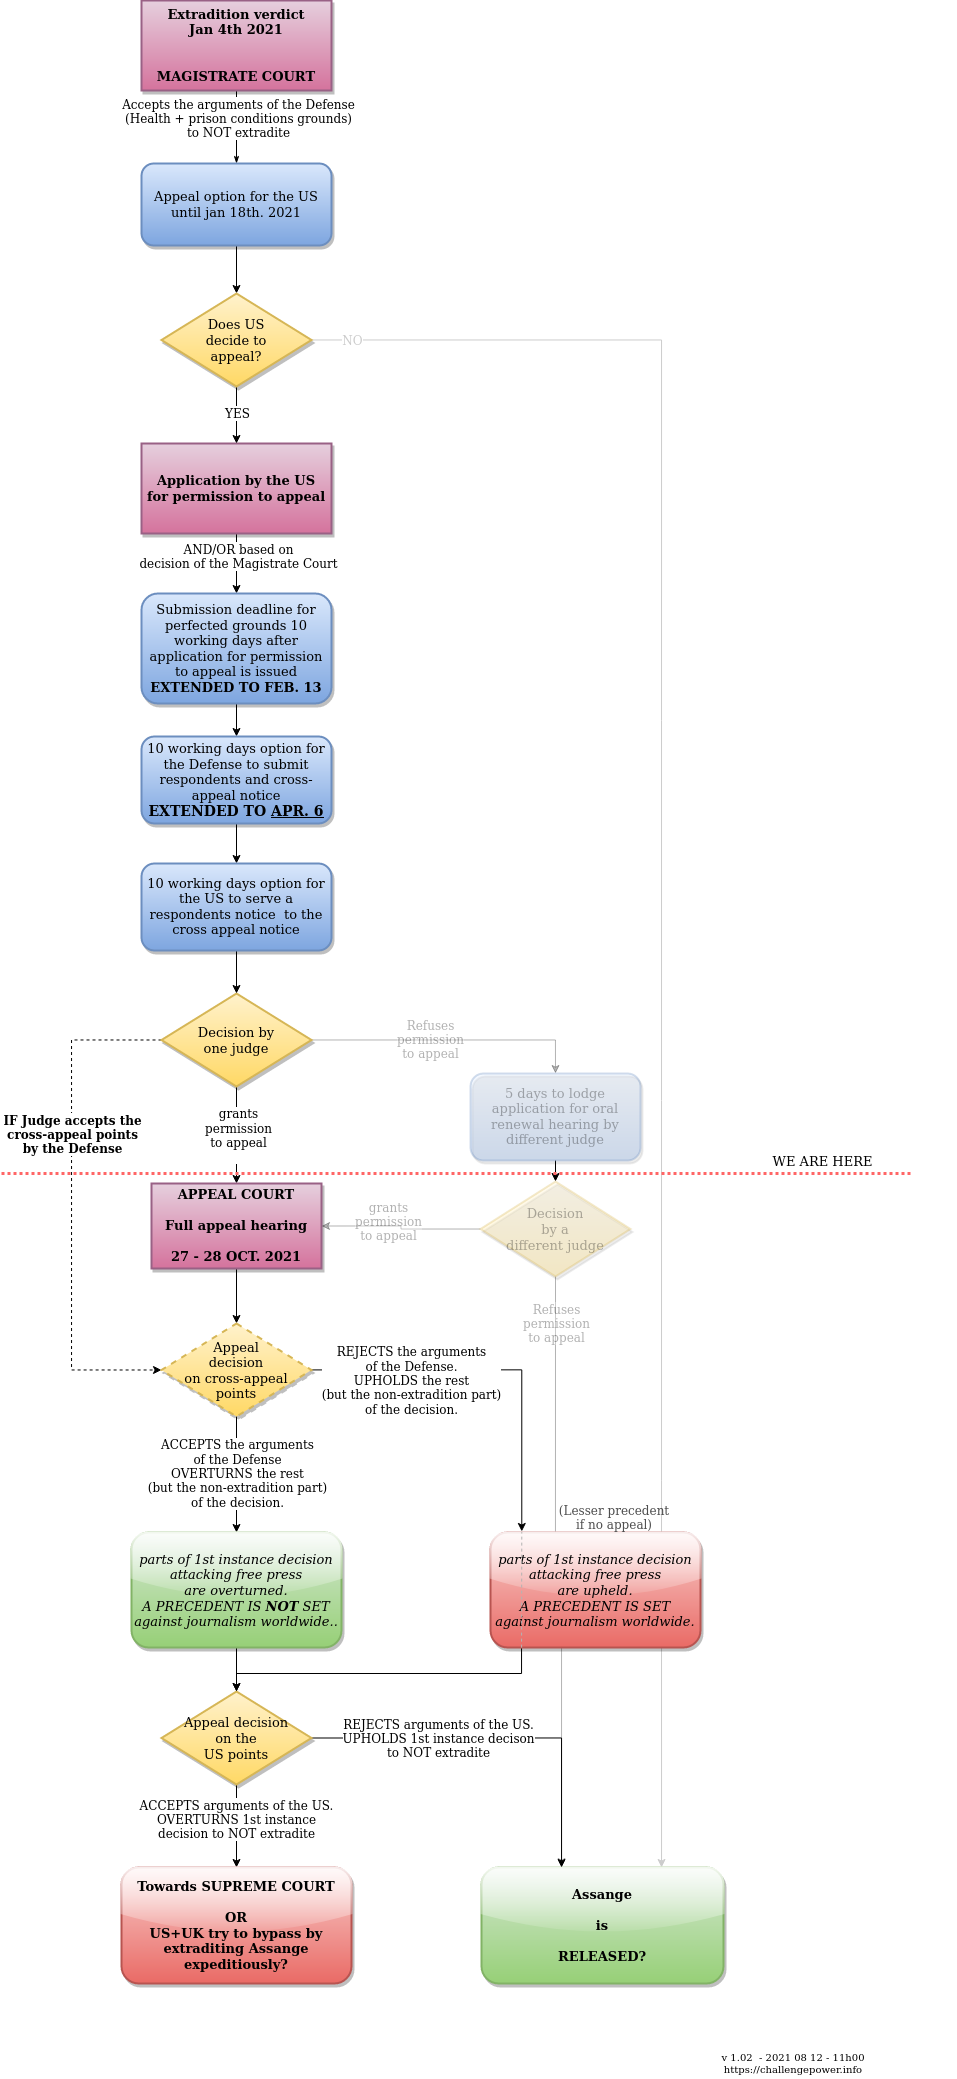 2021-01:next_steps_in_assange_extradition_procedure_after_jan_4th_first_instance_decision_20210812_1105.png